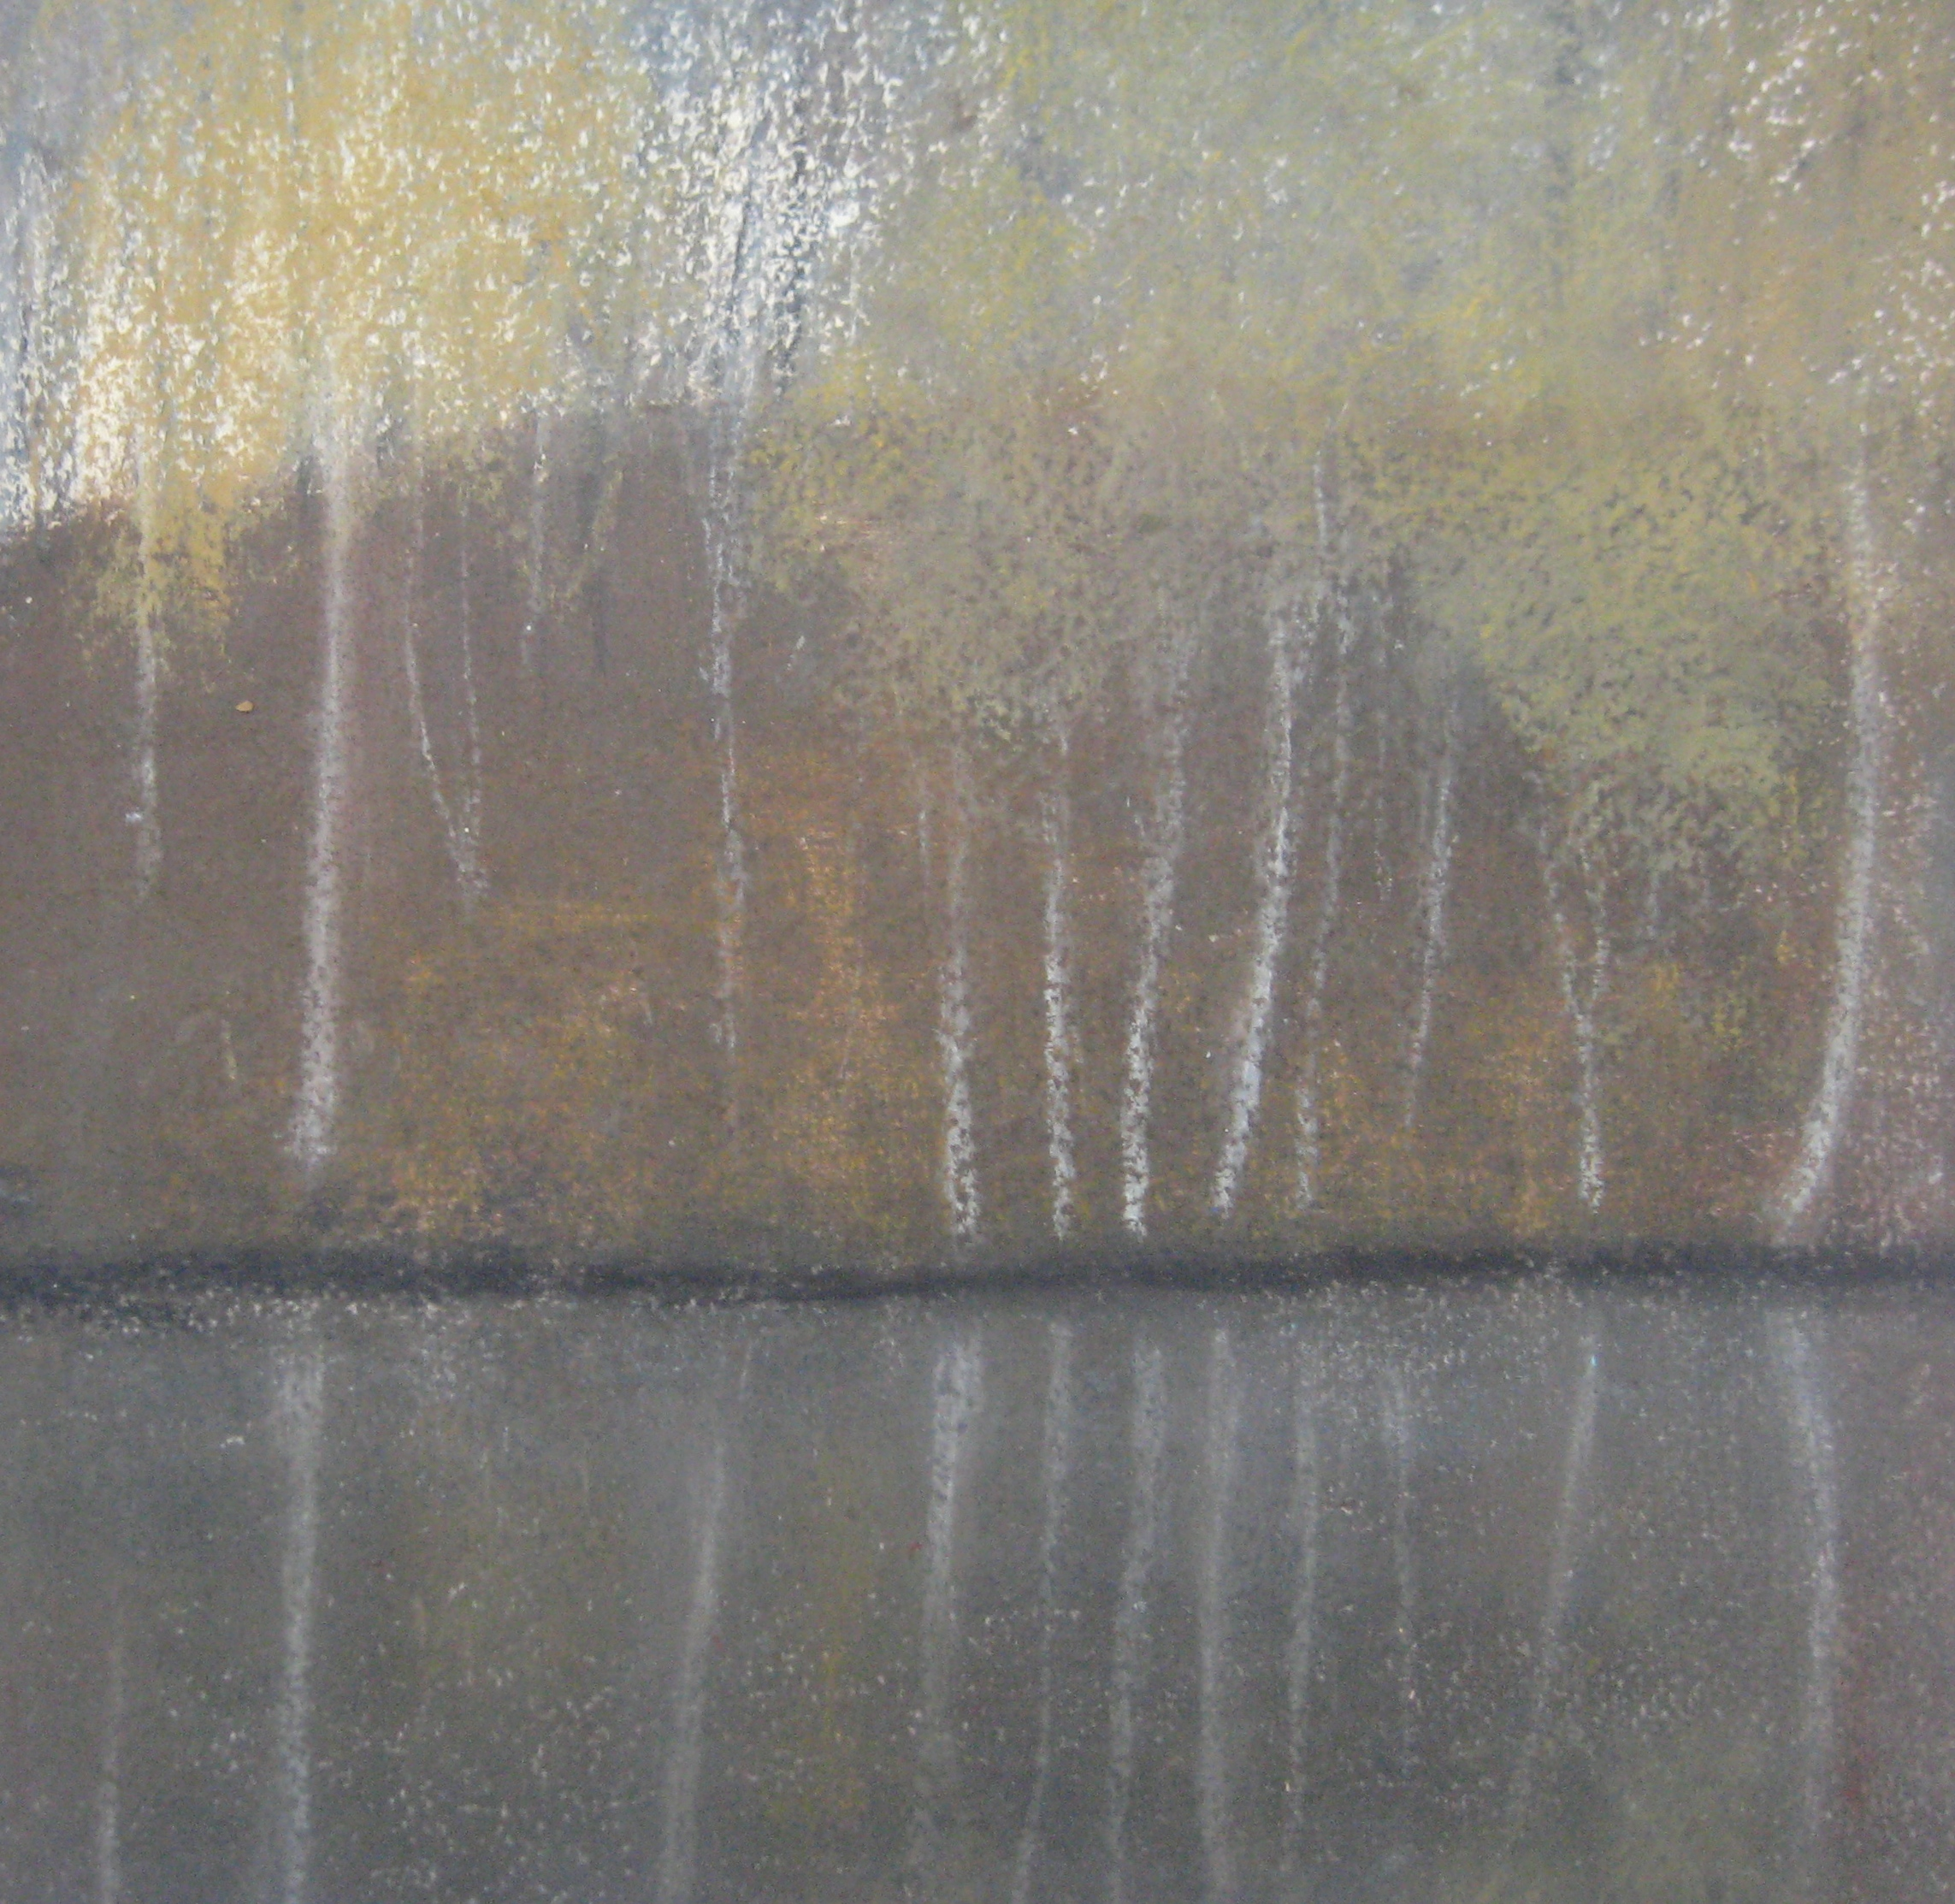 "BIRCHES  Approx. 9.25x10.25"" (23x5cm) Pastel on heavy watercolour paper   Sold"